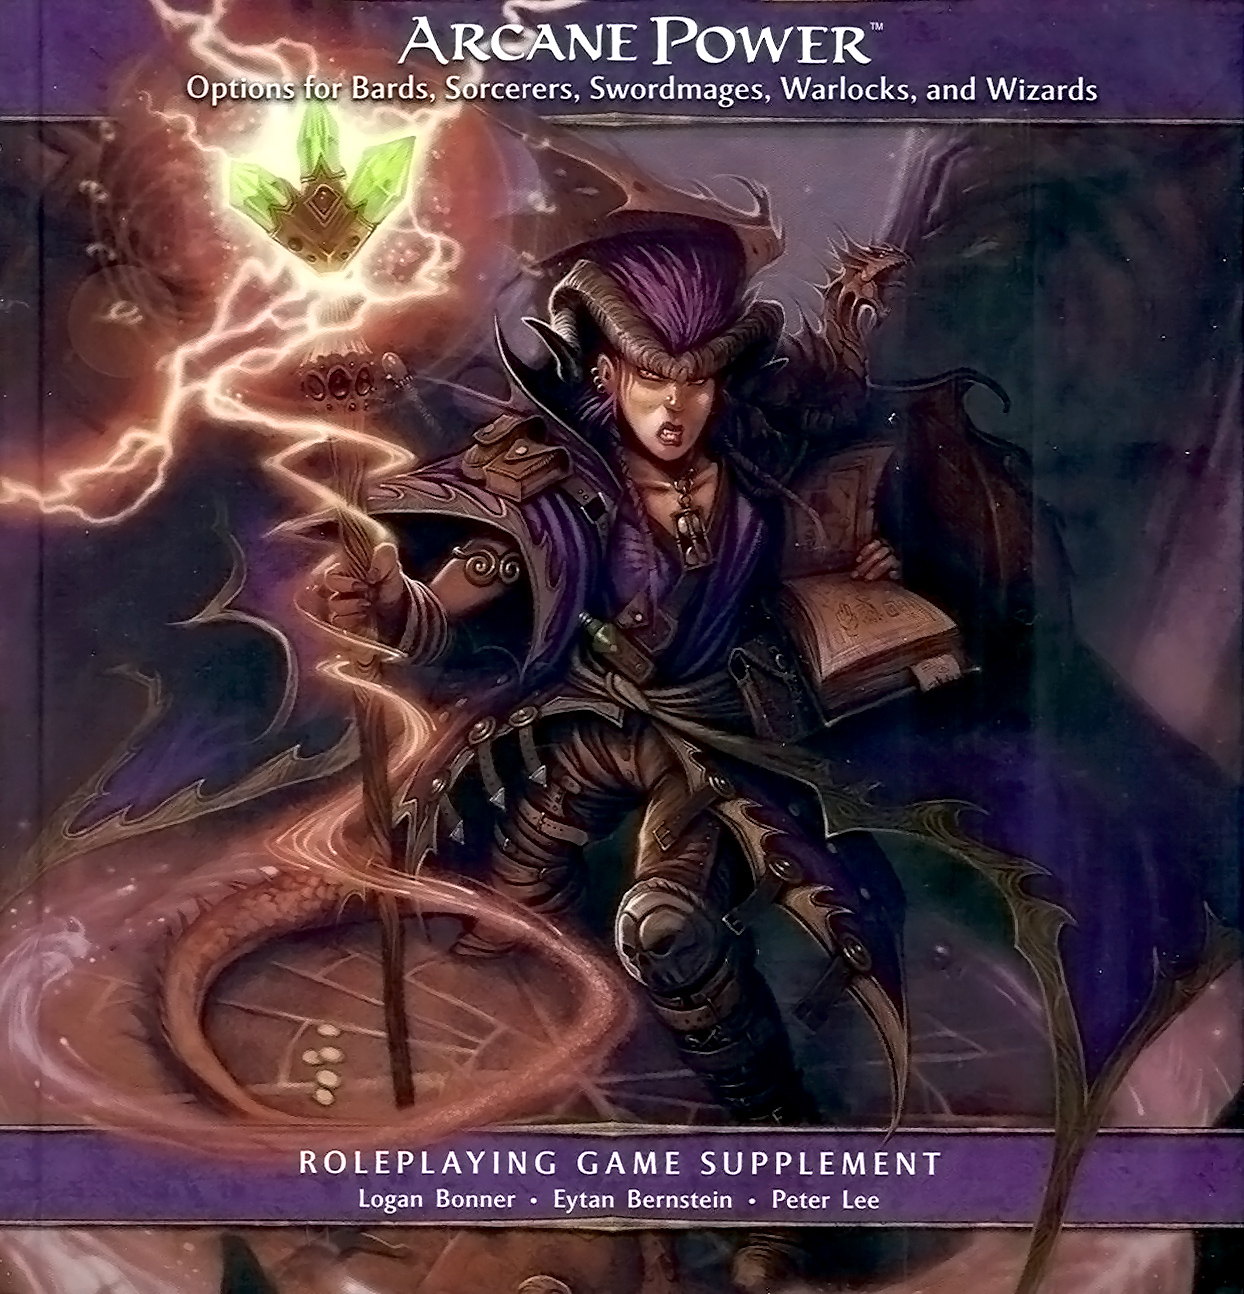 pseudodragon Tiefling e famiglio pseudodrago in copertina - by William O'Connor Arcane Power (2009-04) © Wizards of the Coast & Hasbro